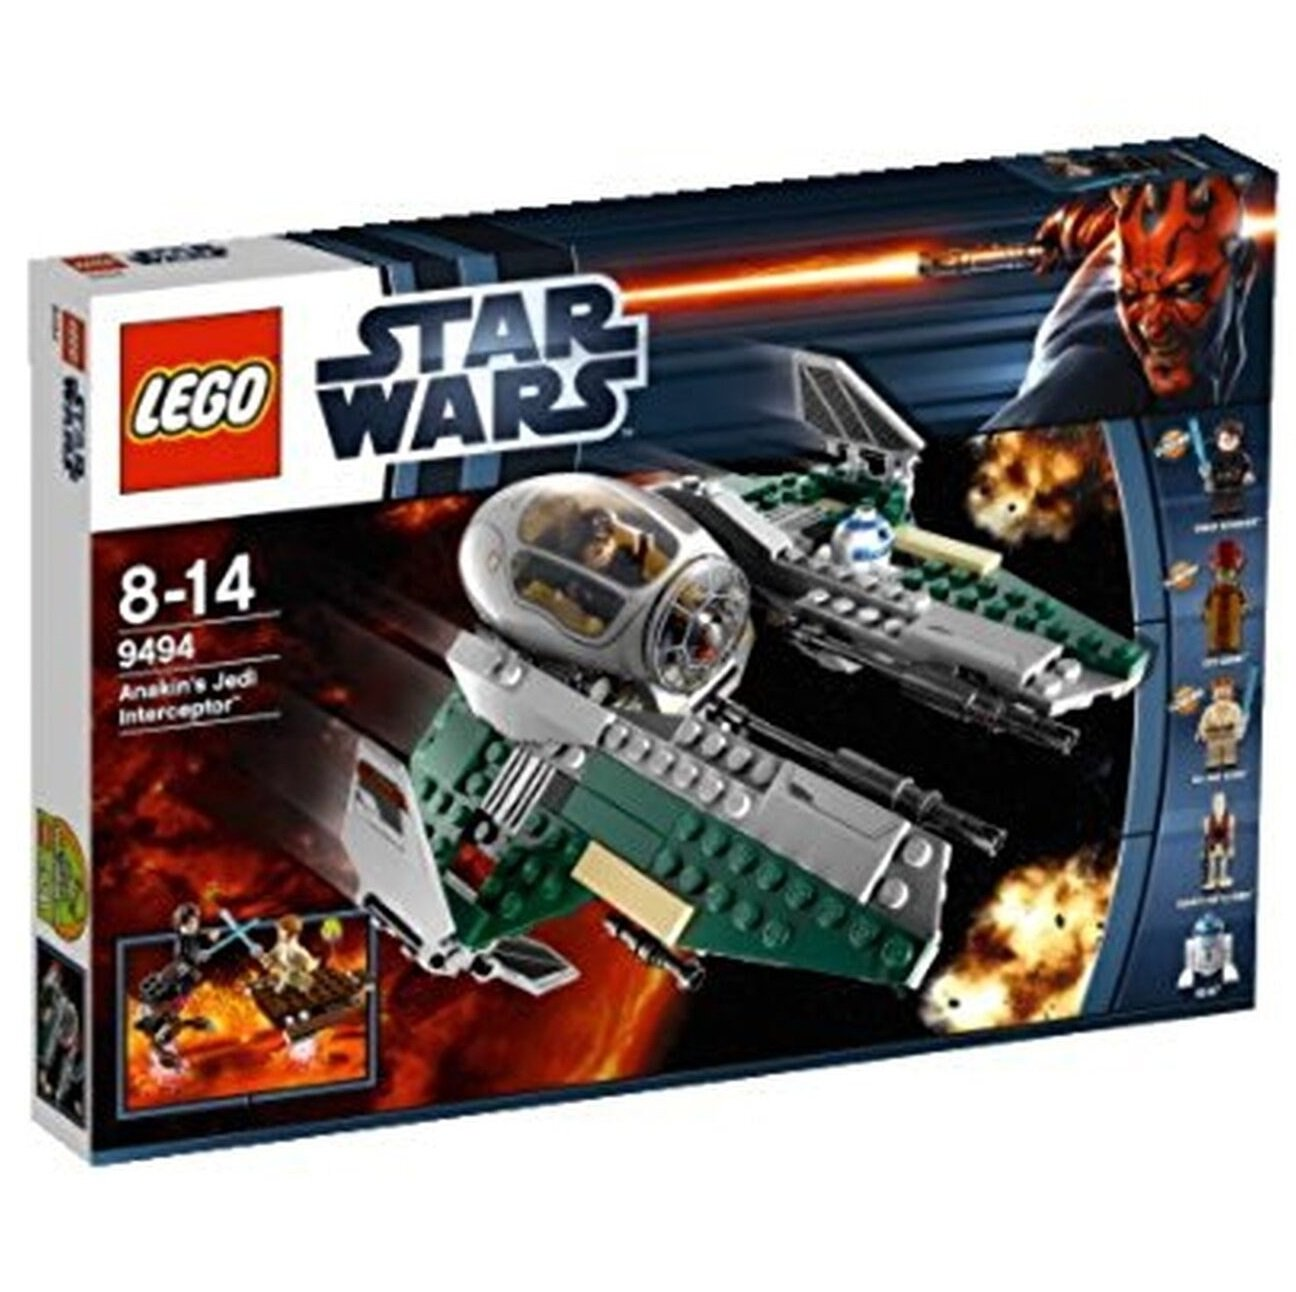 9494 Lego Star Wars Anakin's Jedi Interceptor